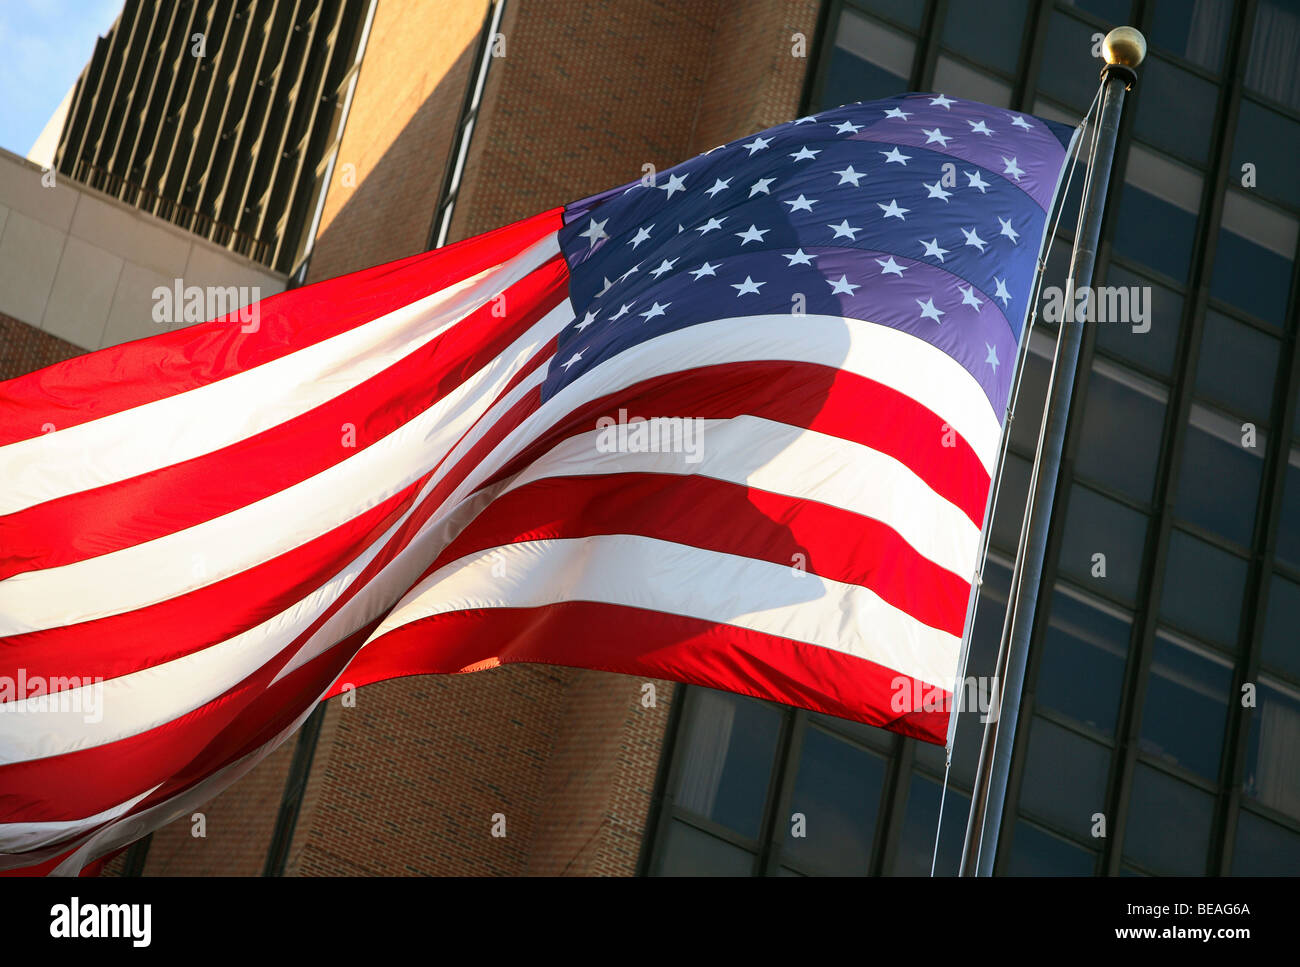 A fluttering American flag - Stock Image